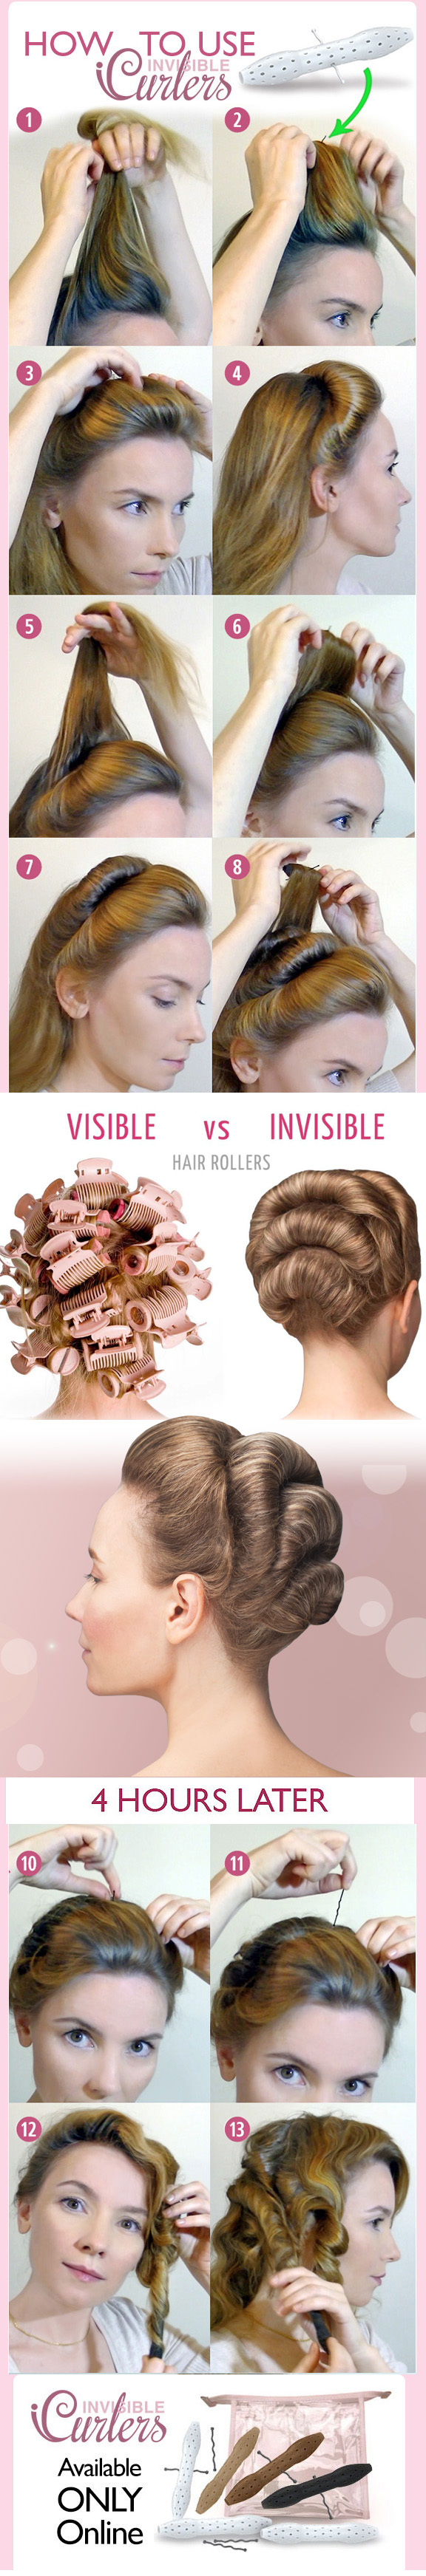 Invisible hair rollers tutorial how to use icurlers updo hairdo